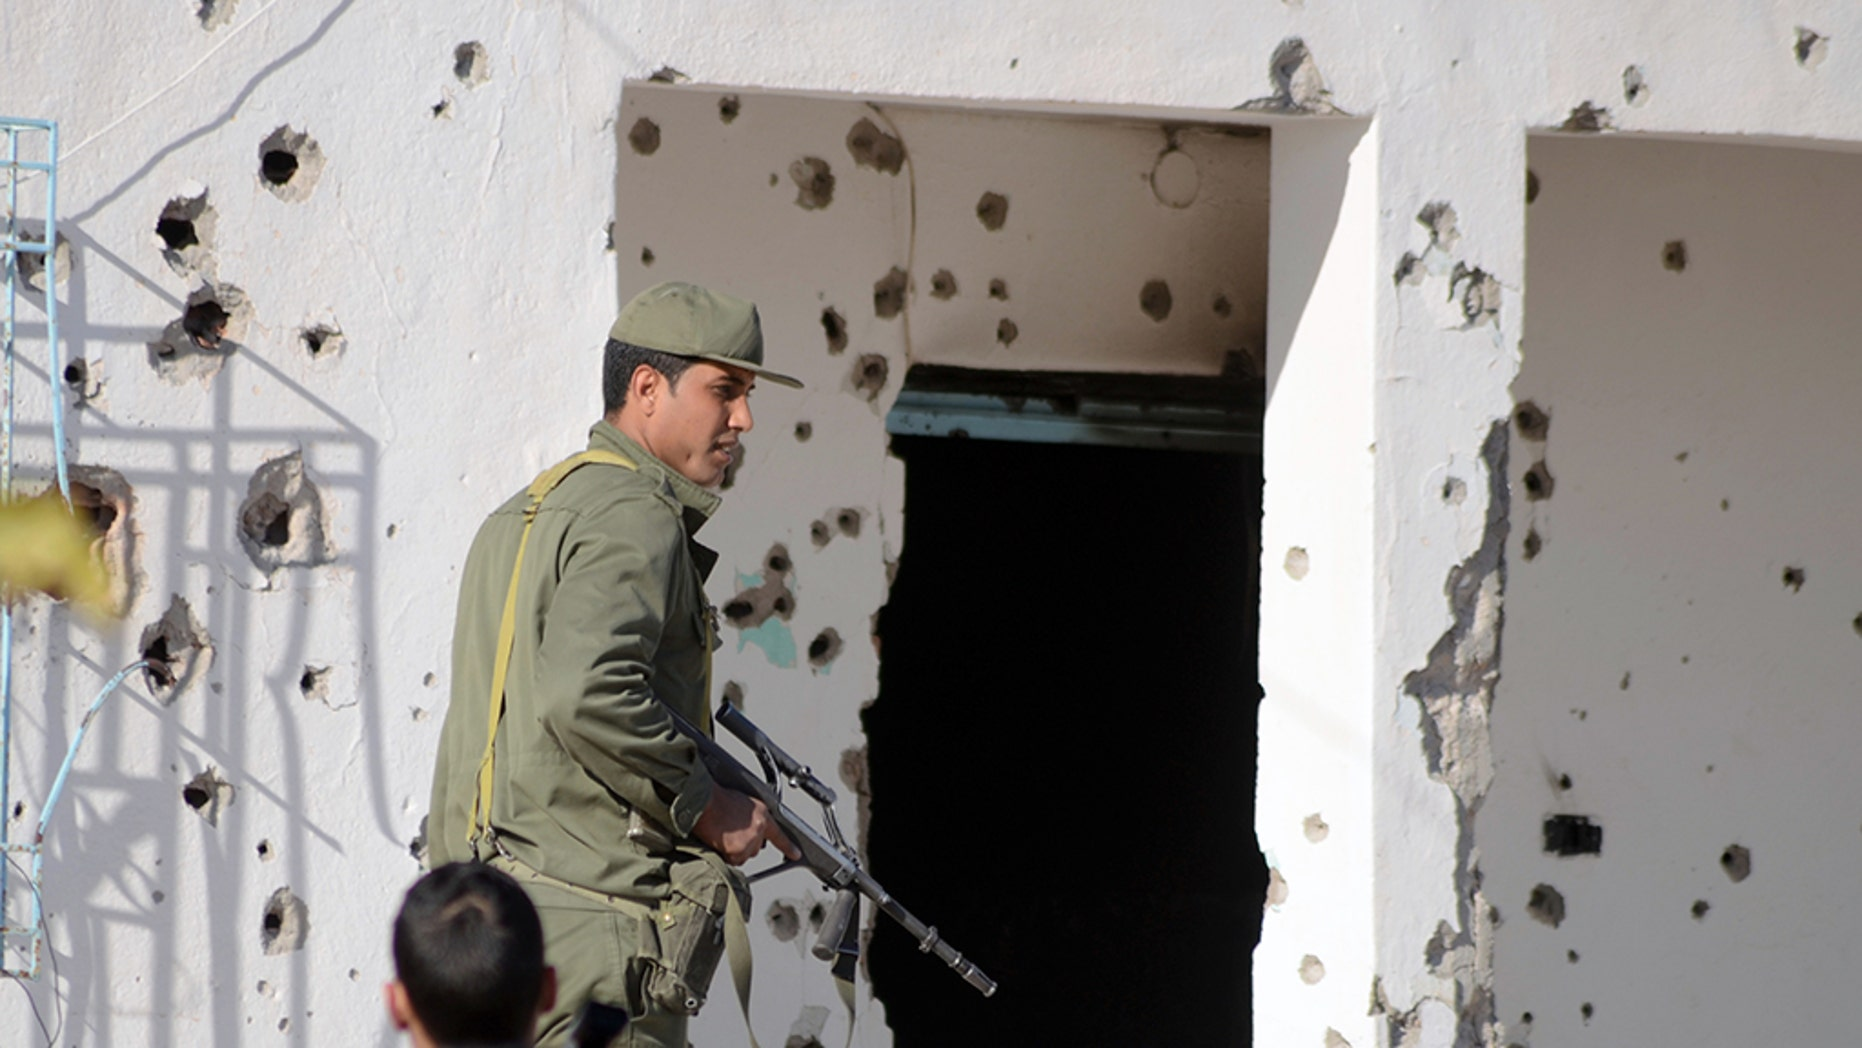 A member of the Tunisian special forces stands outside a bullet-riddled house in the southern town of Ben Guerdane, near the Libyan border, during clashes with jihadists in 2016.